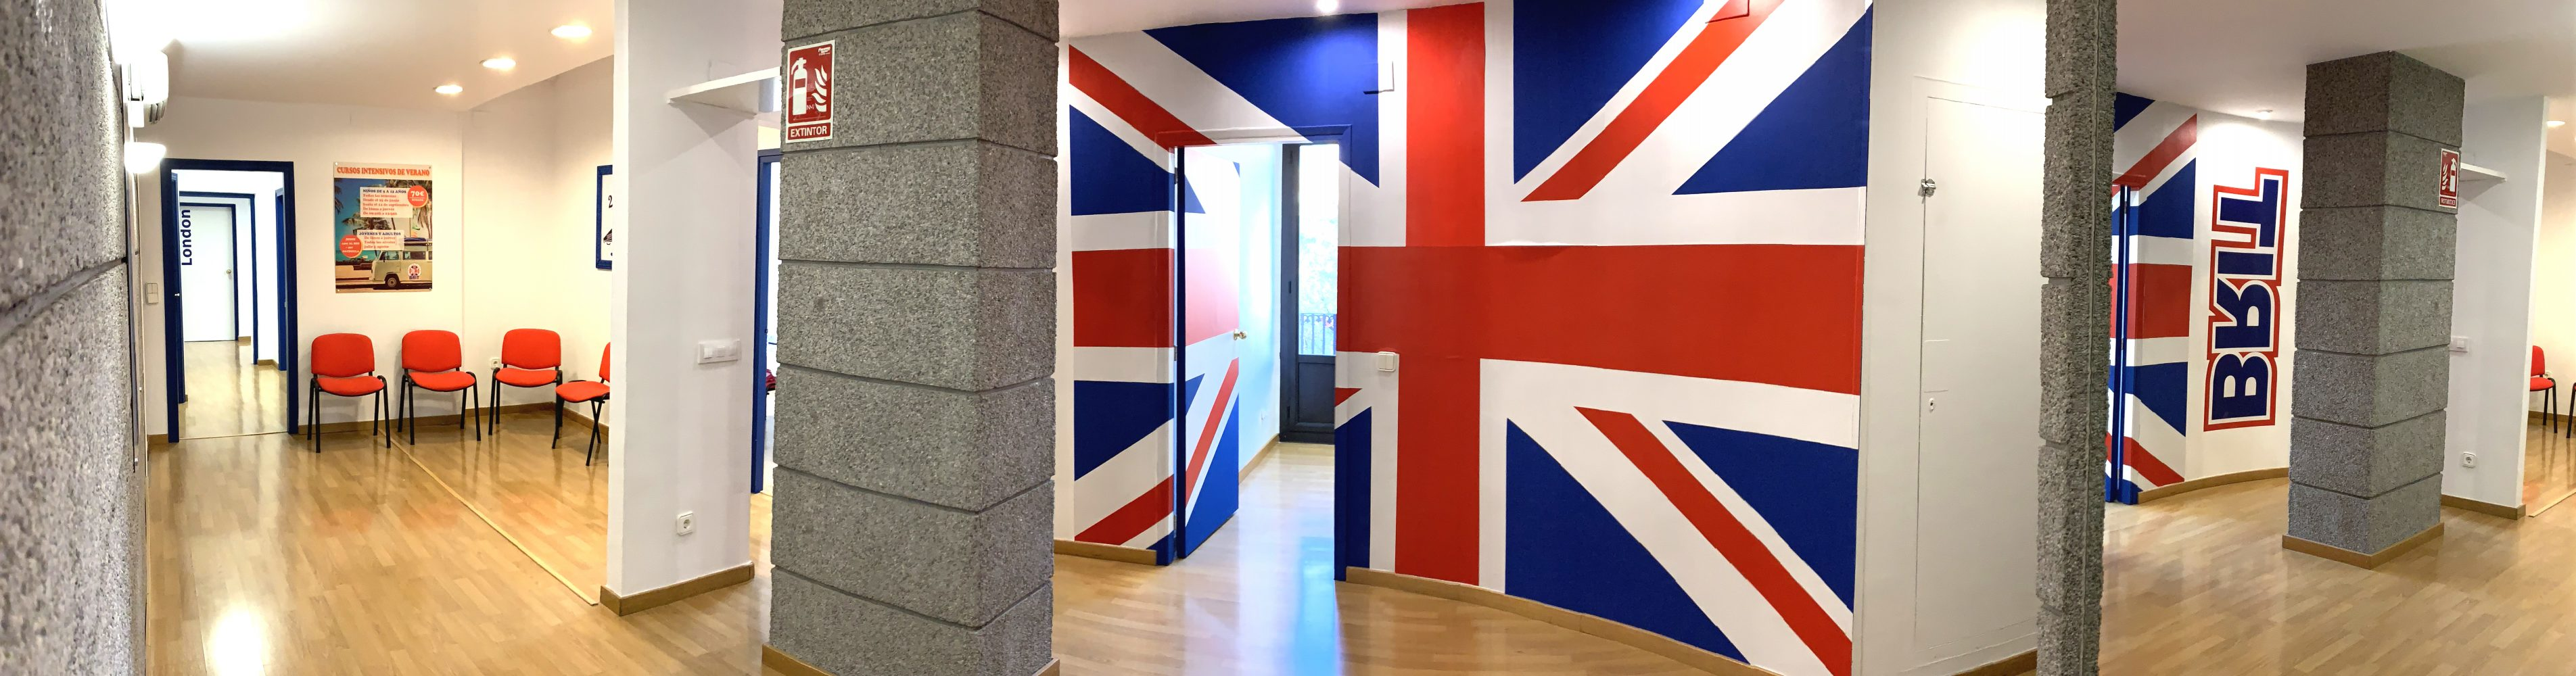 BritEnglishSchool-banner